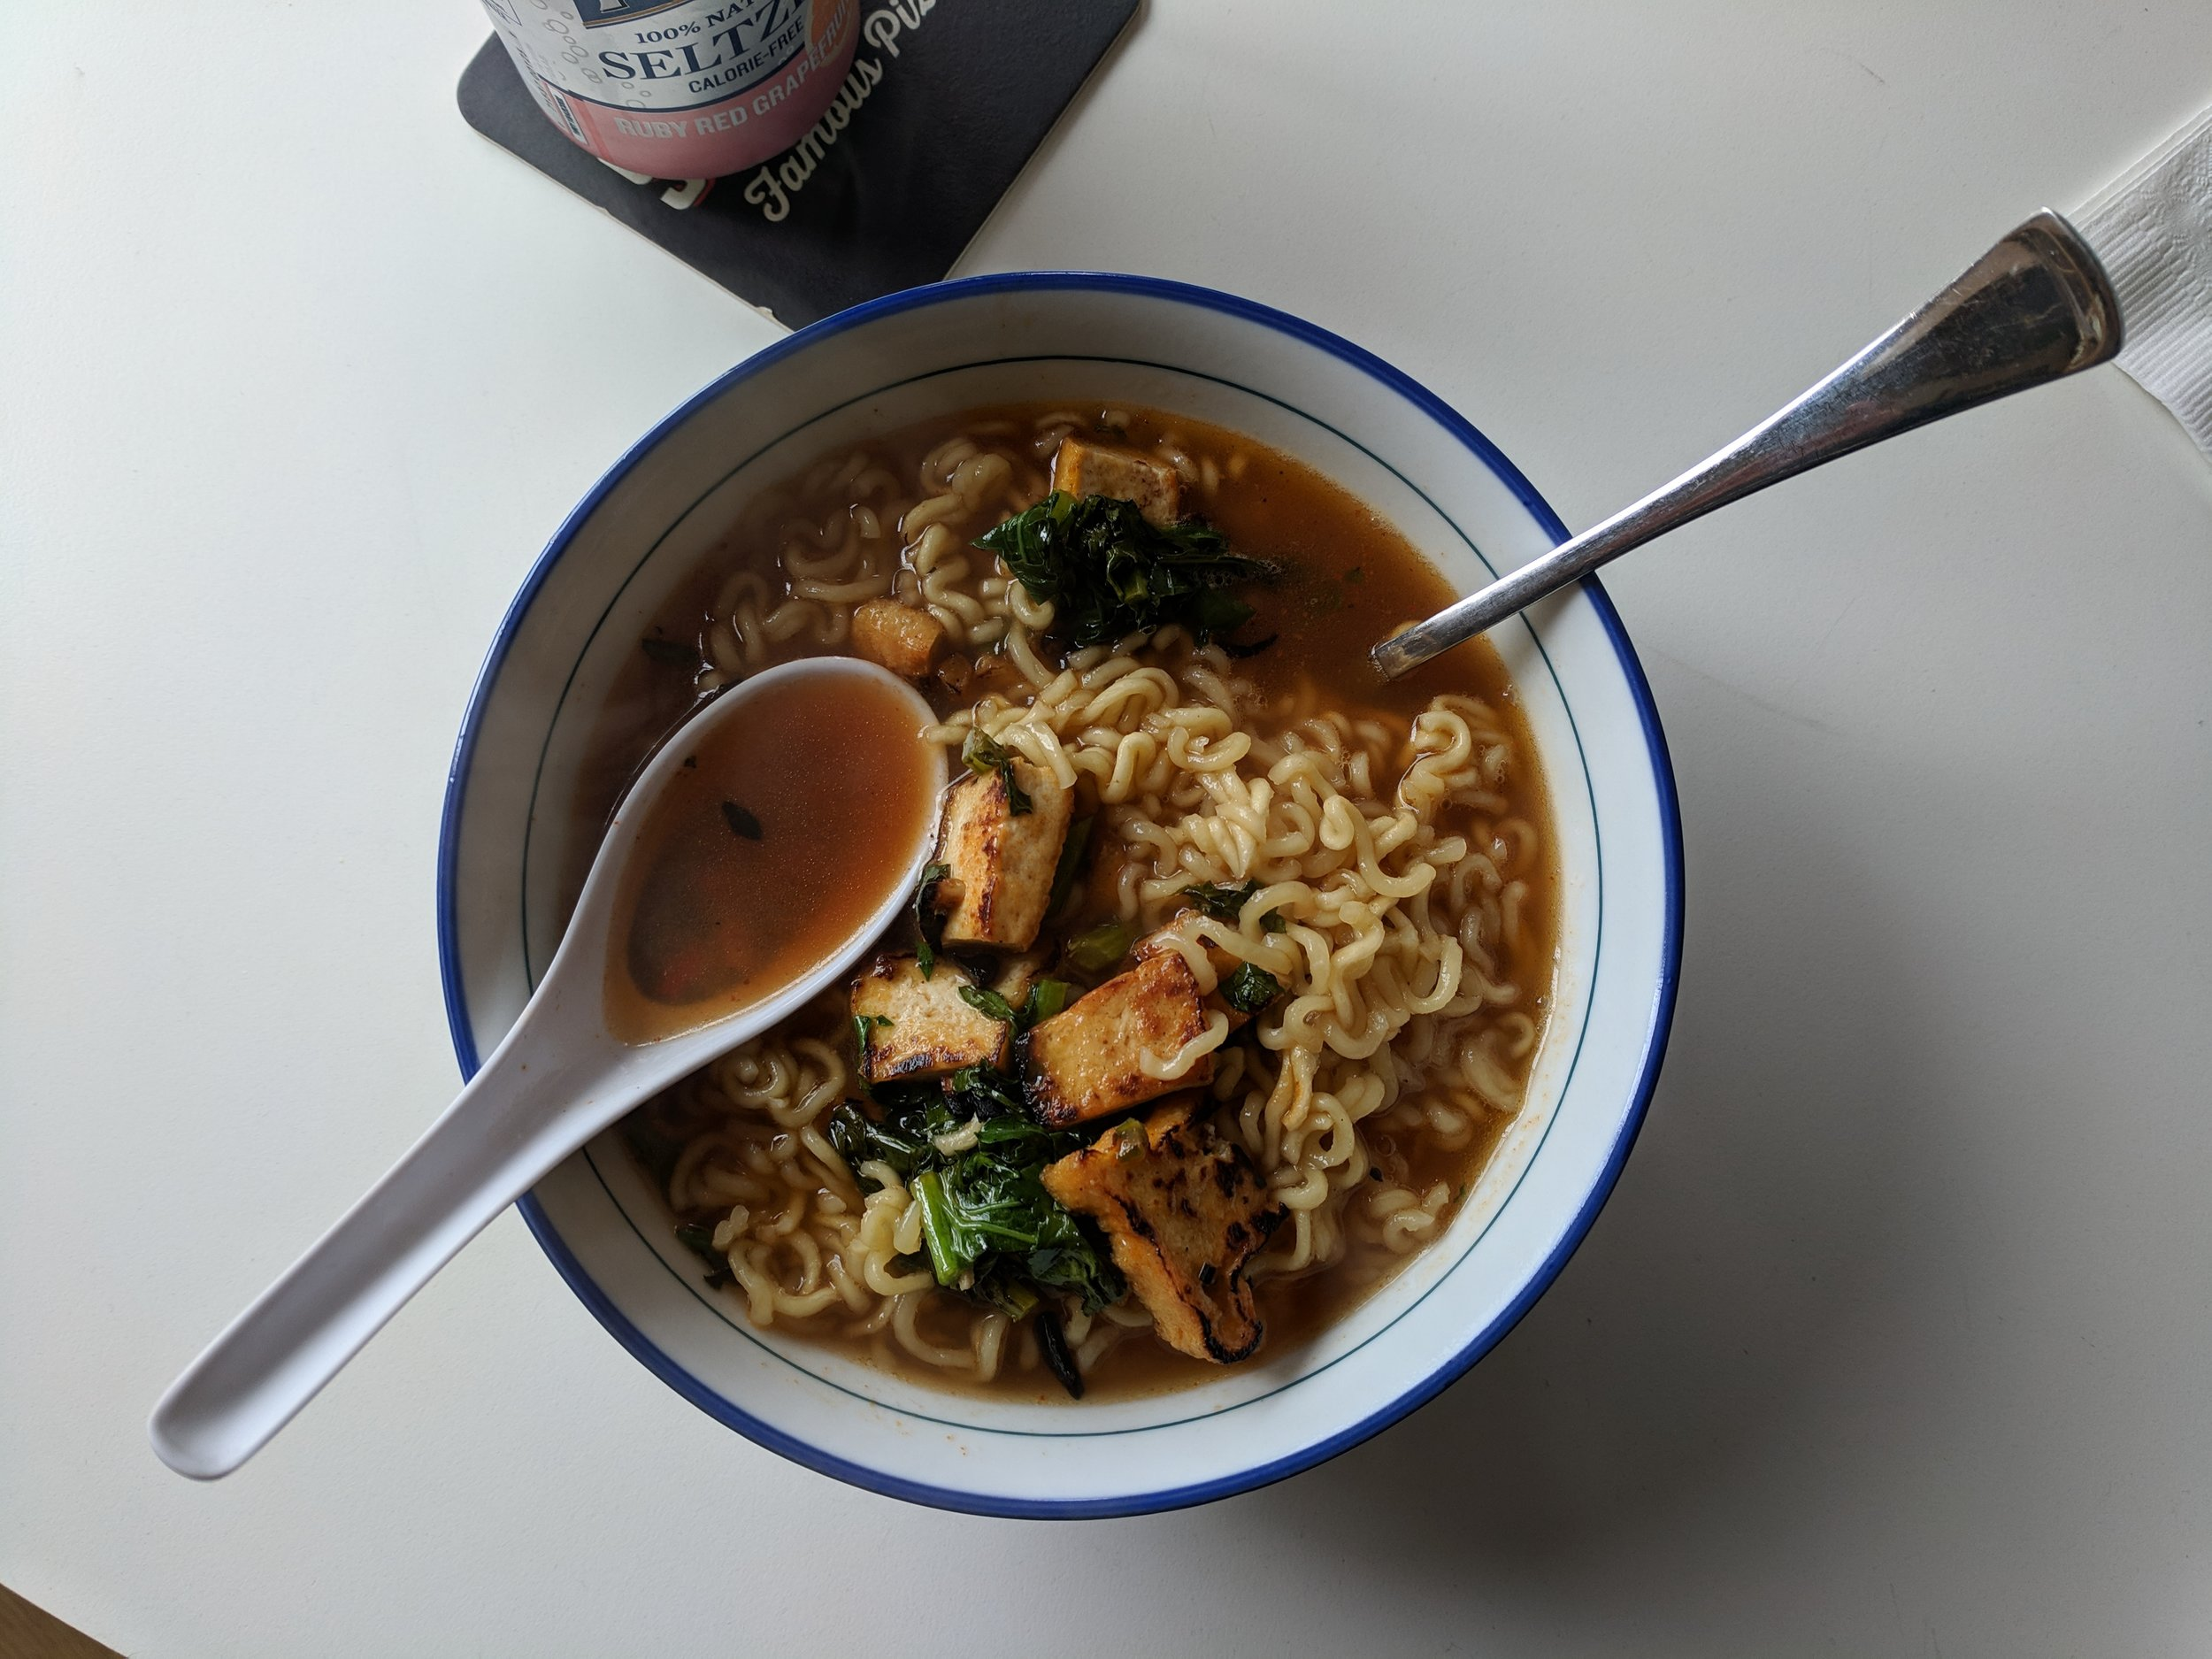 "Did I almost forget lunch again?! Here's a quick lunch of nong shim ""mild"", greens & fried tofu + hot sauce and obligate seltzer can"